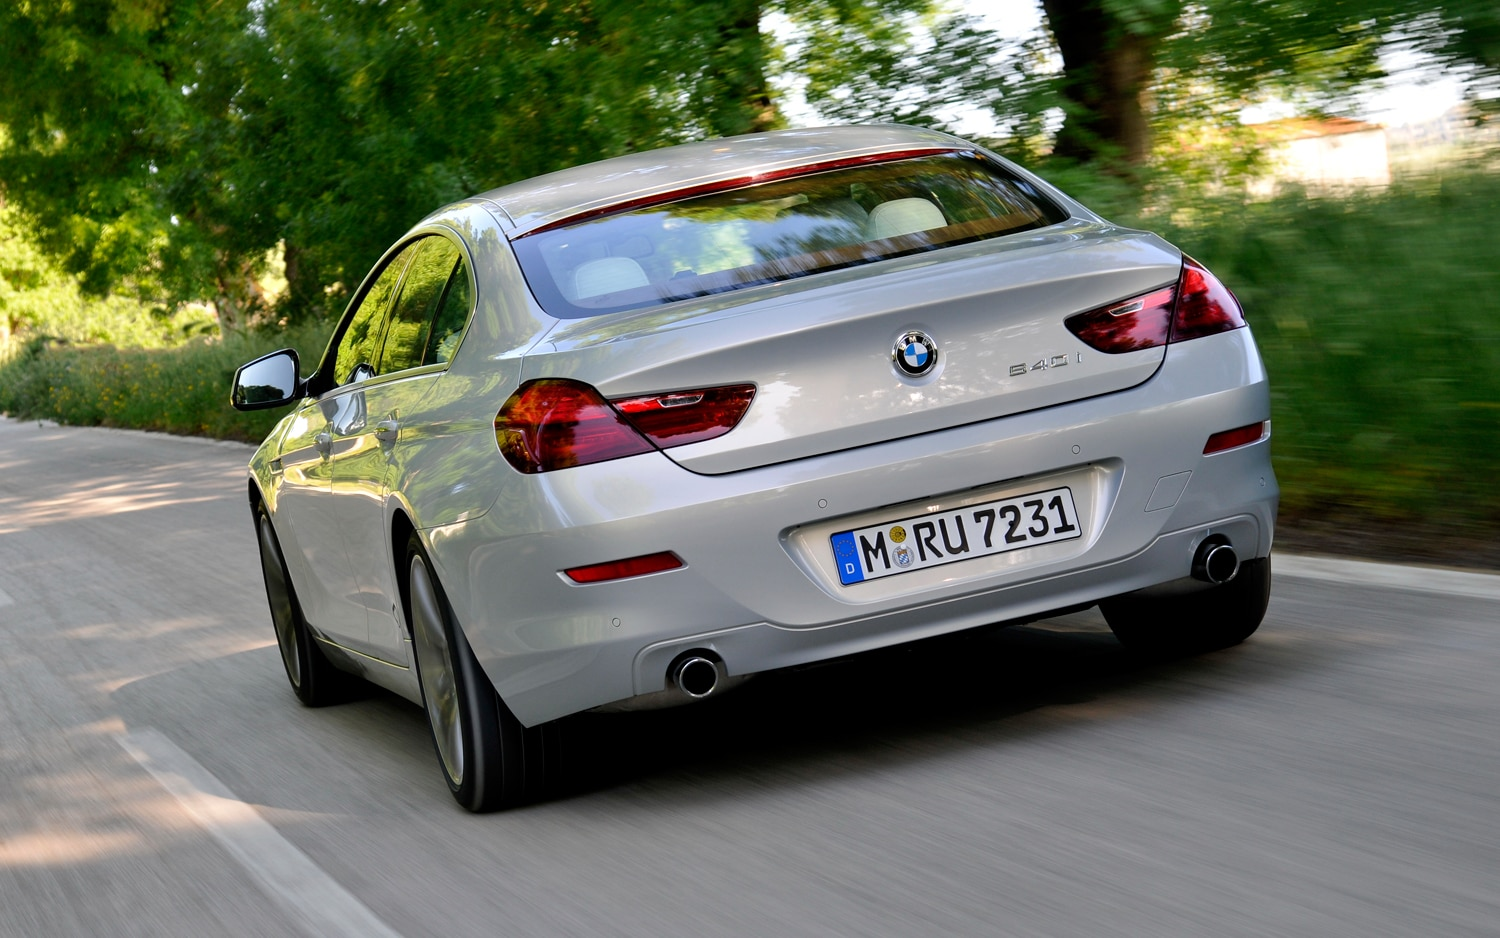 In two dimensions the bmw